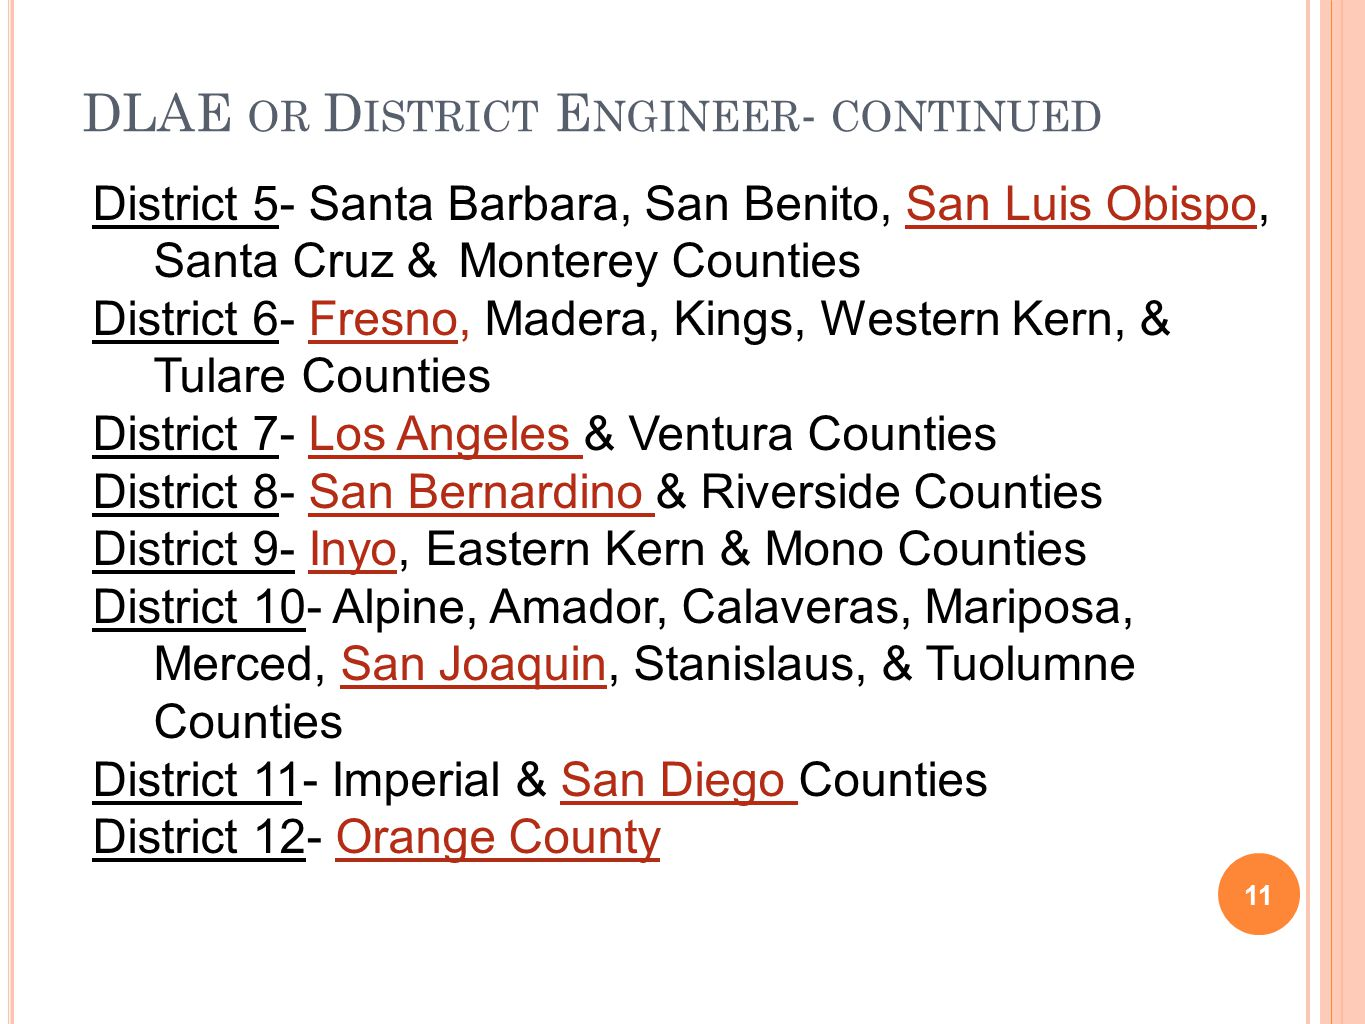 DLAE OR D ISTRICT E NGINEER - CONTINUED 11 District 5- Santa Barbara, San Benito, San Luis Obispo, Santa Cruz & Monterey Counties District 6- Fresno, Madera, Kings, Western Kern, & Tulare Counties District 7- Los Angeles & Ventura Counties District 8- San Bernardino & Riverside Counties District 9- Inyo, Eastern Kern & Mono Counties District 10- Alpine, Amador, Calaveras, Mariposa, Merced, San Joaquin, Stanislaus, & Tuolumne Counties District 11- Imperial & San Diego Counties District 12- Orange County